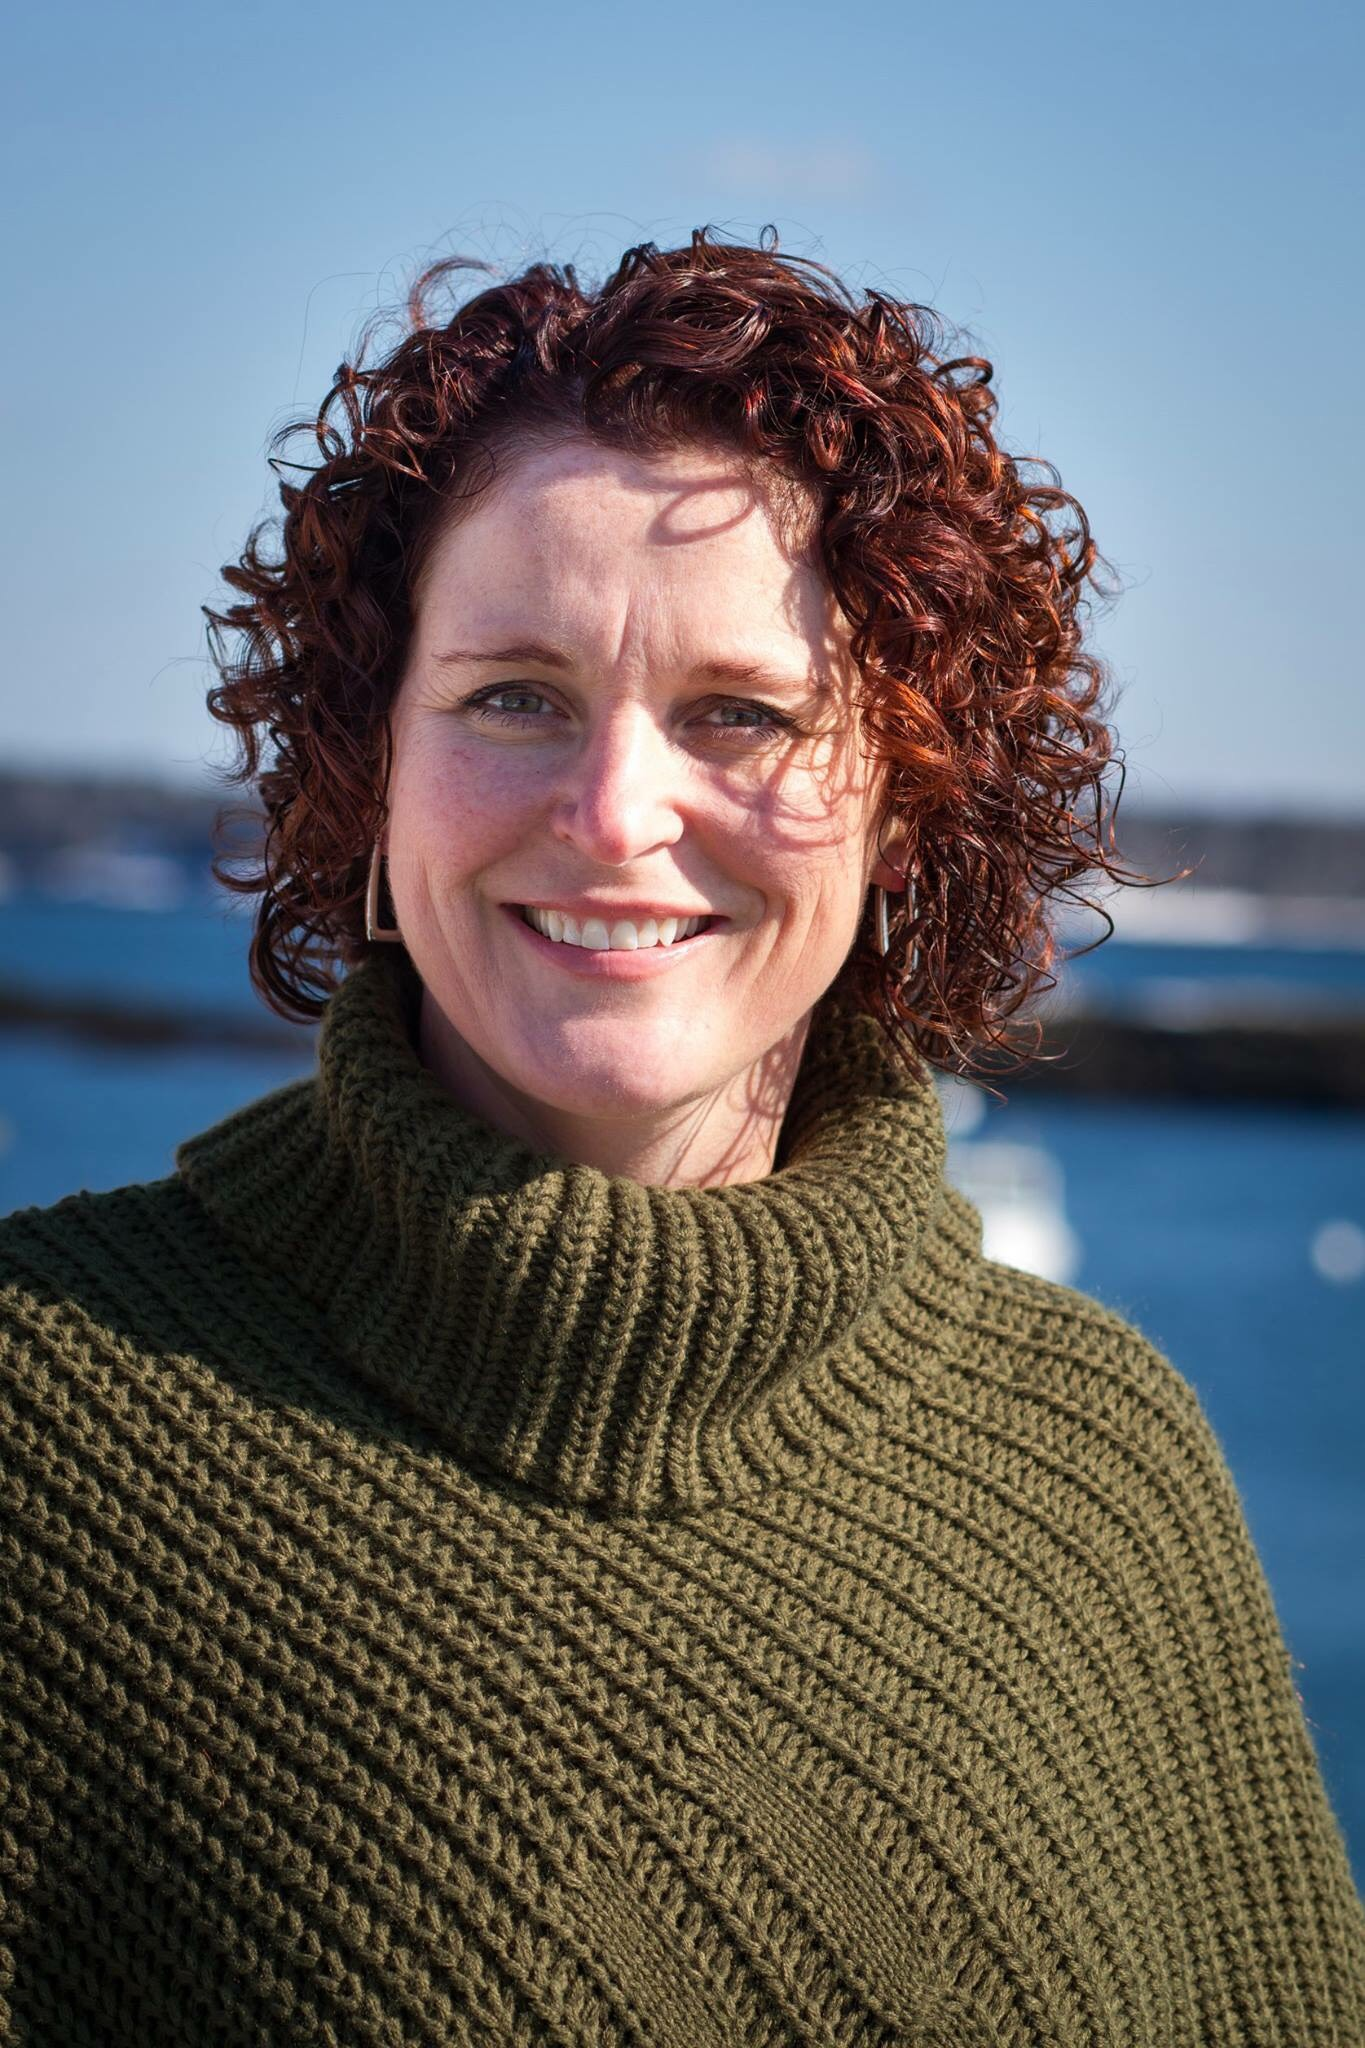 Christine Burns Rudalevige.jpeg